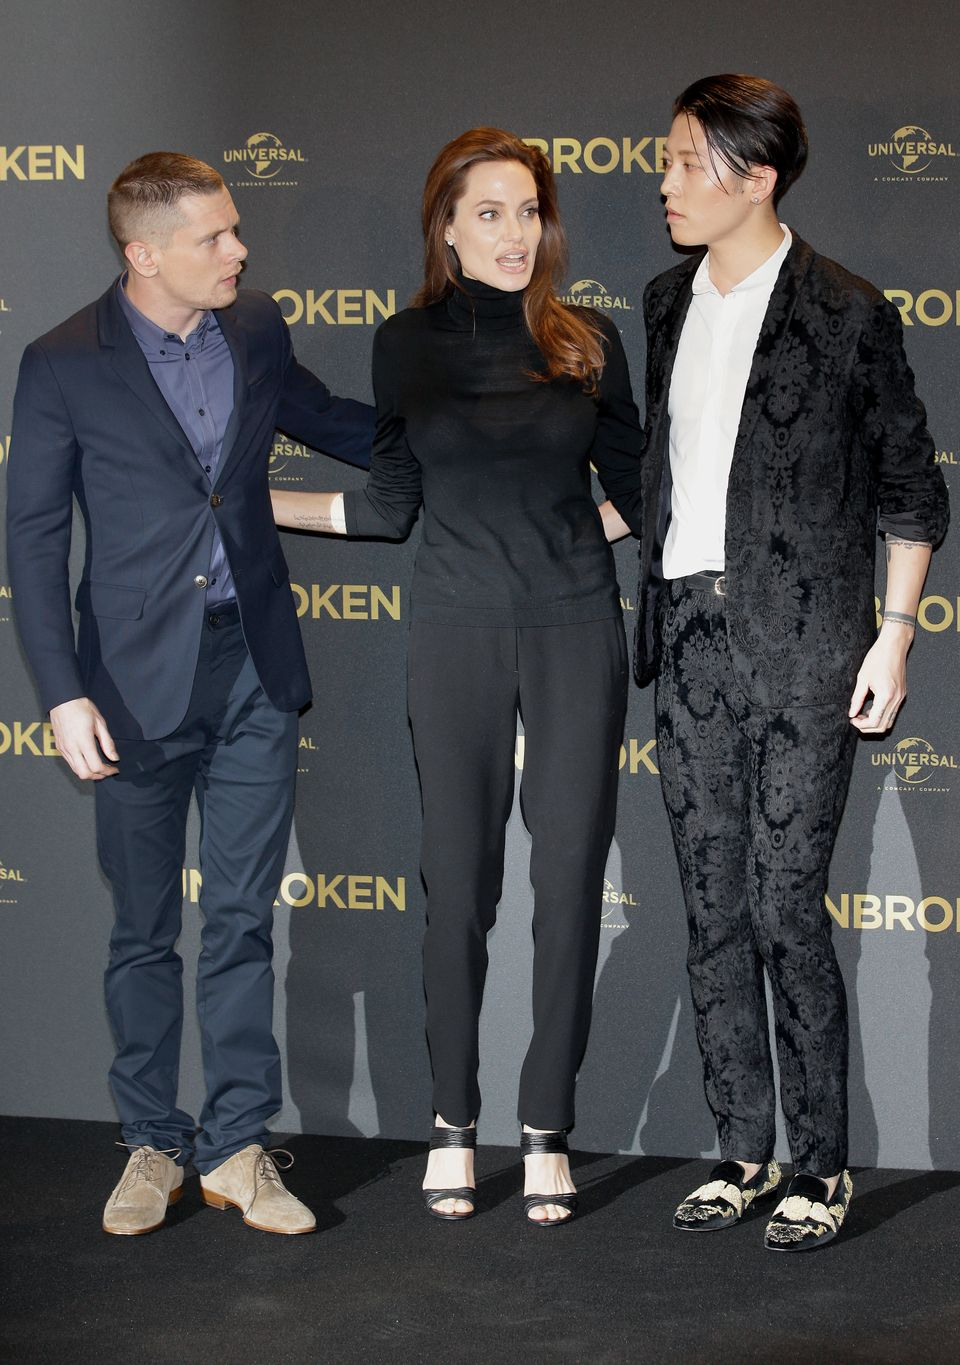 US director Angelina Jolie, center, and the actors Jack O'Connell, left, and Miyavi, right, pose for the photographers during